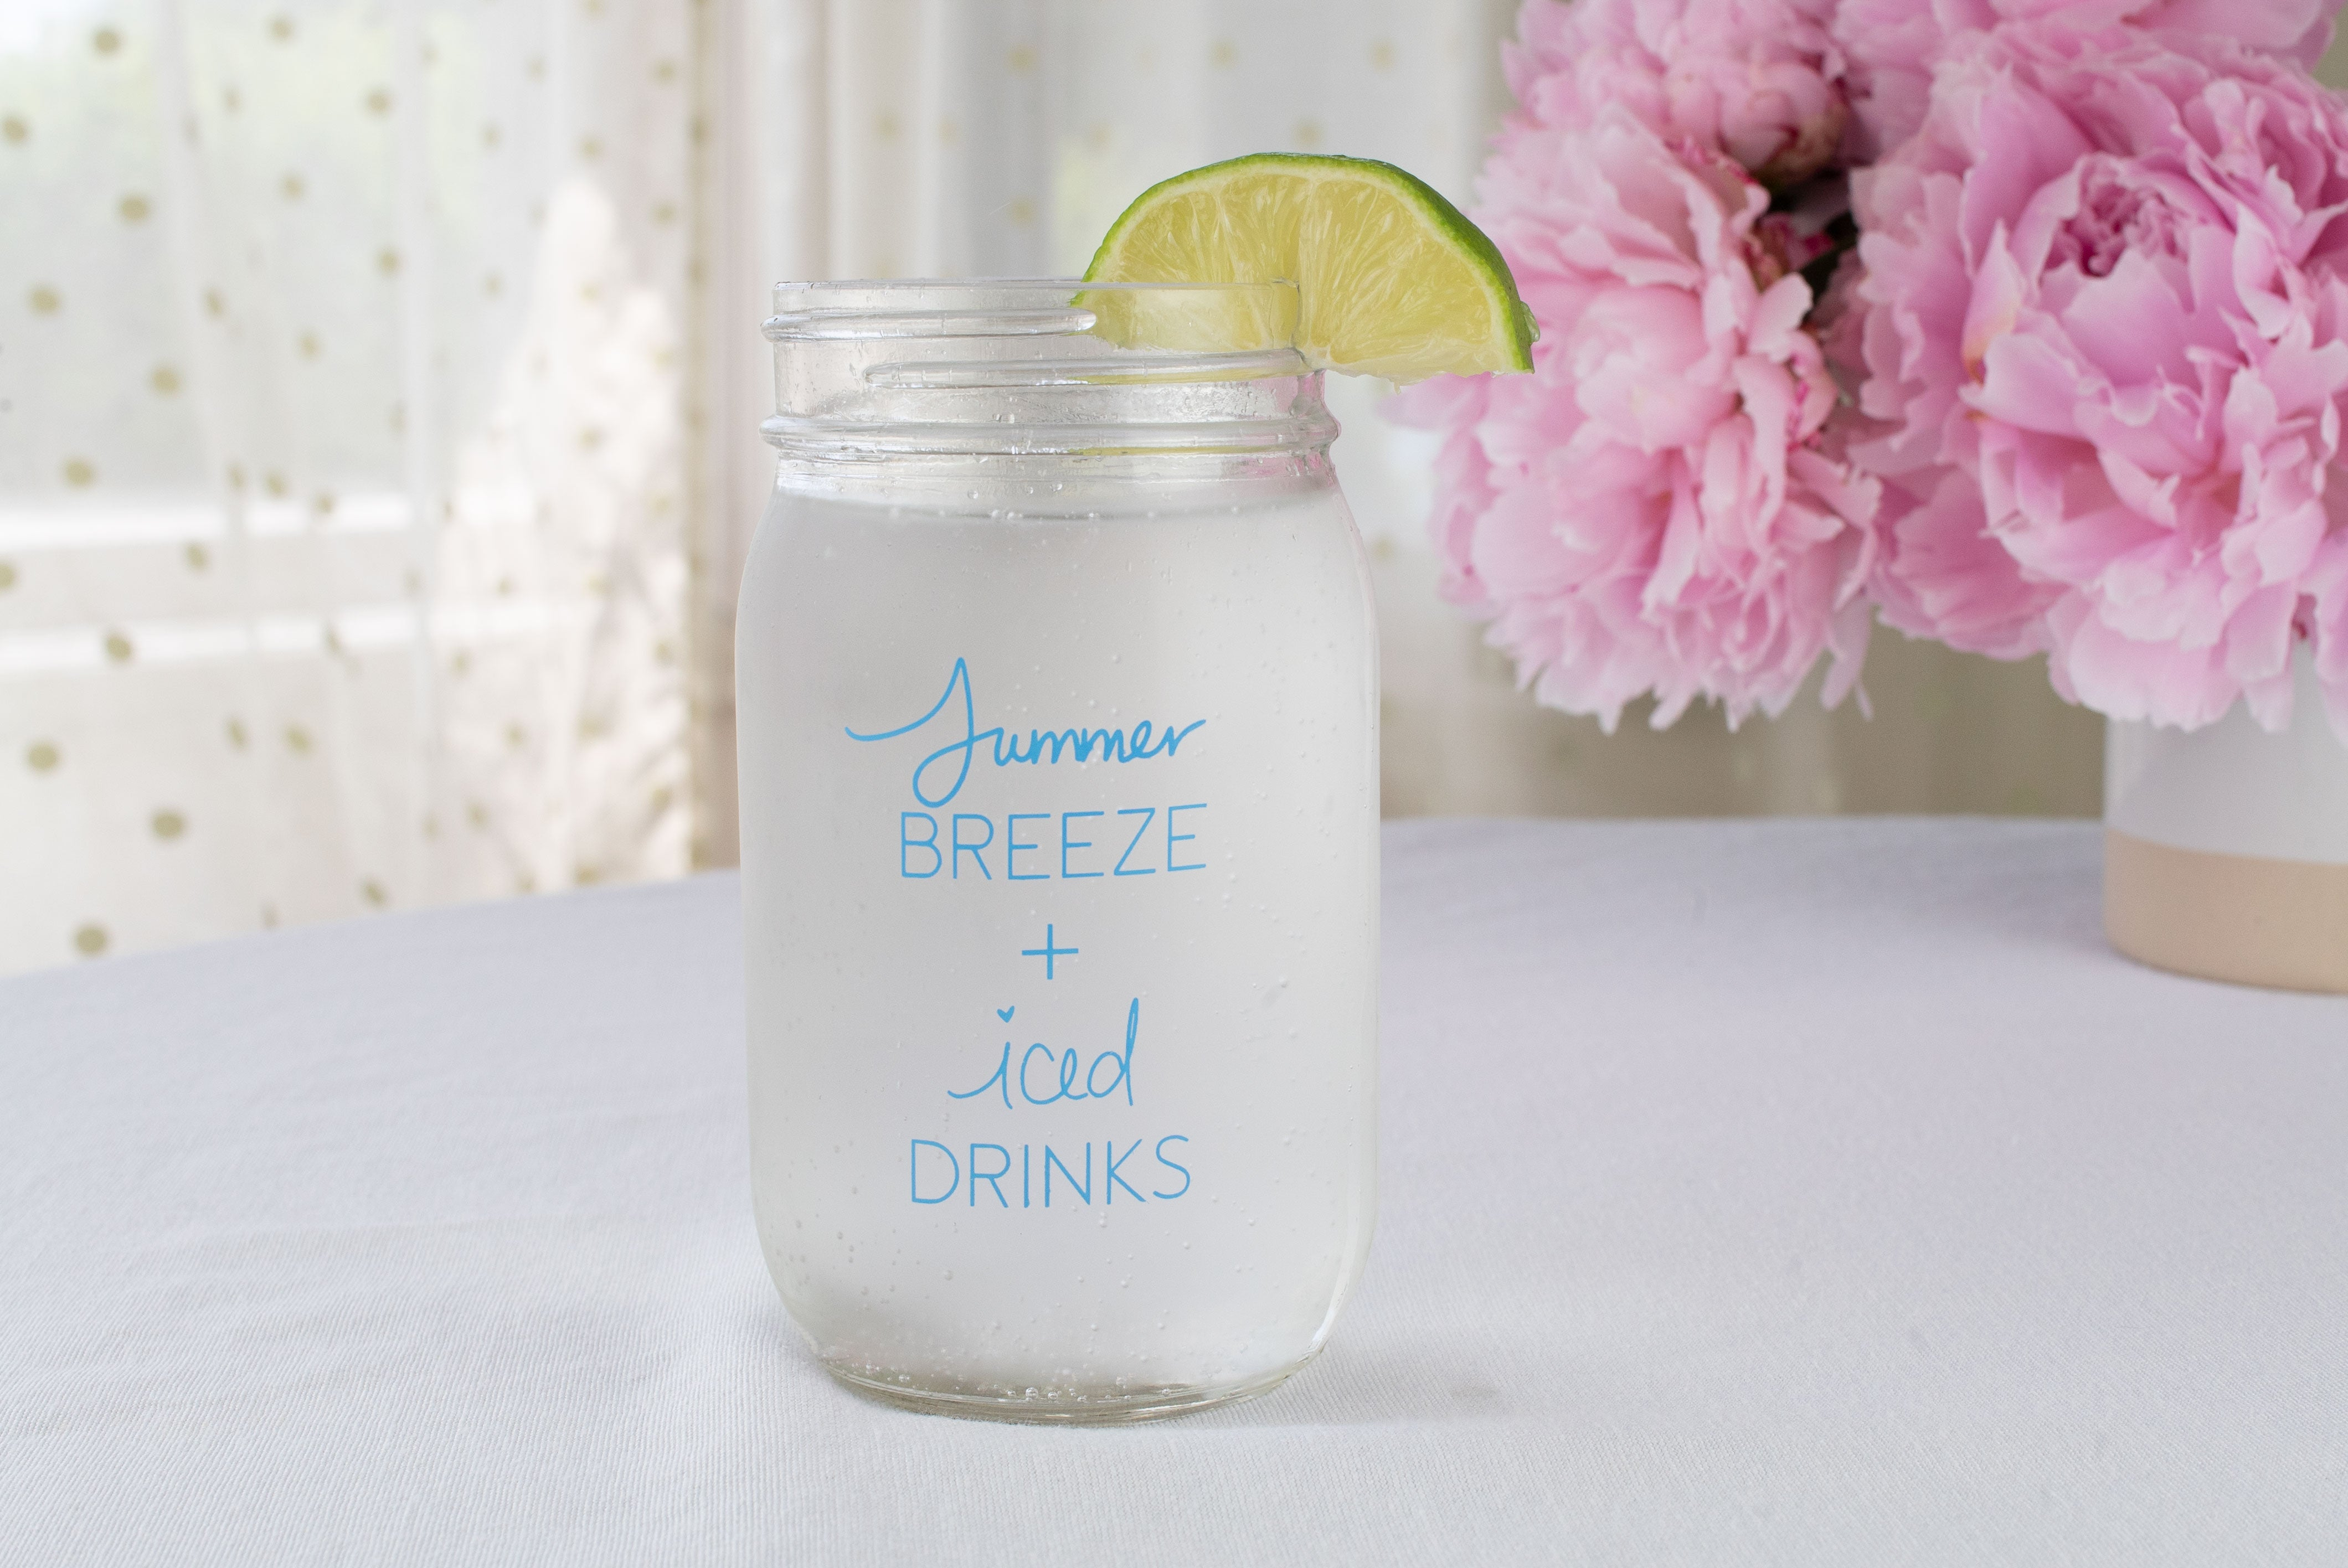 Summer breeze + Iced Drinks Mason Jar | 16oz